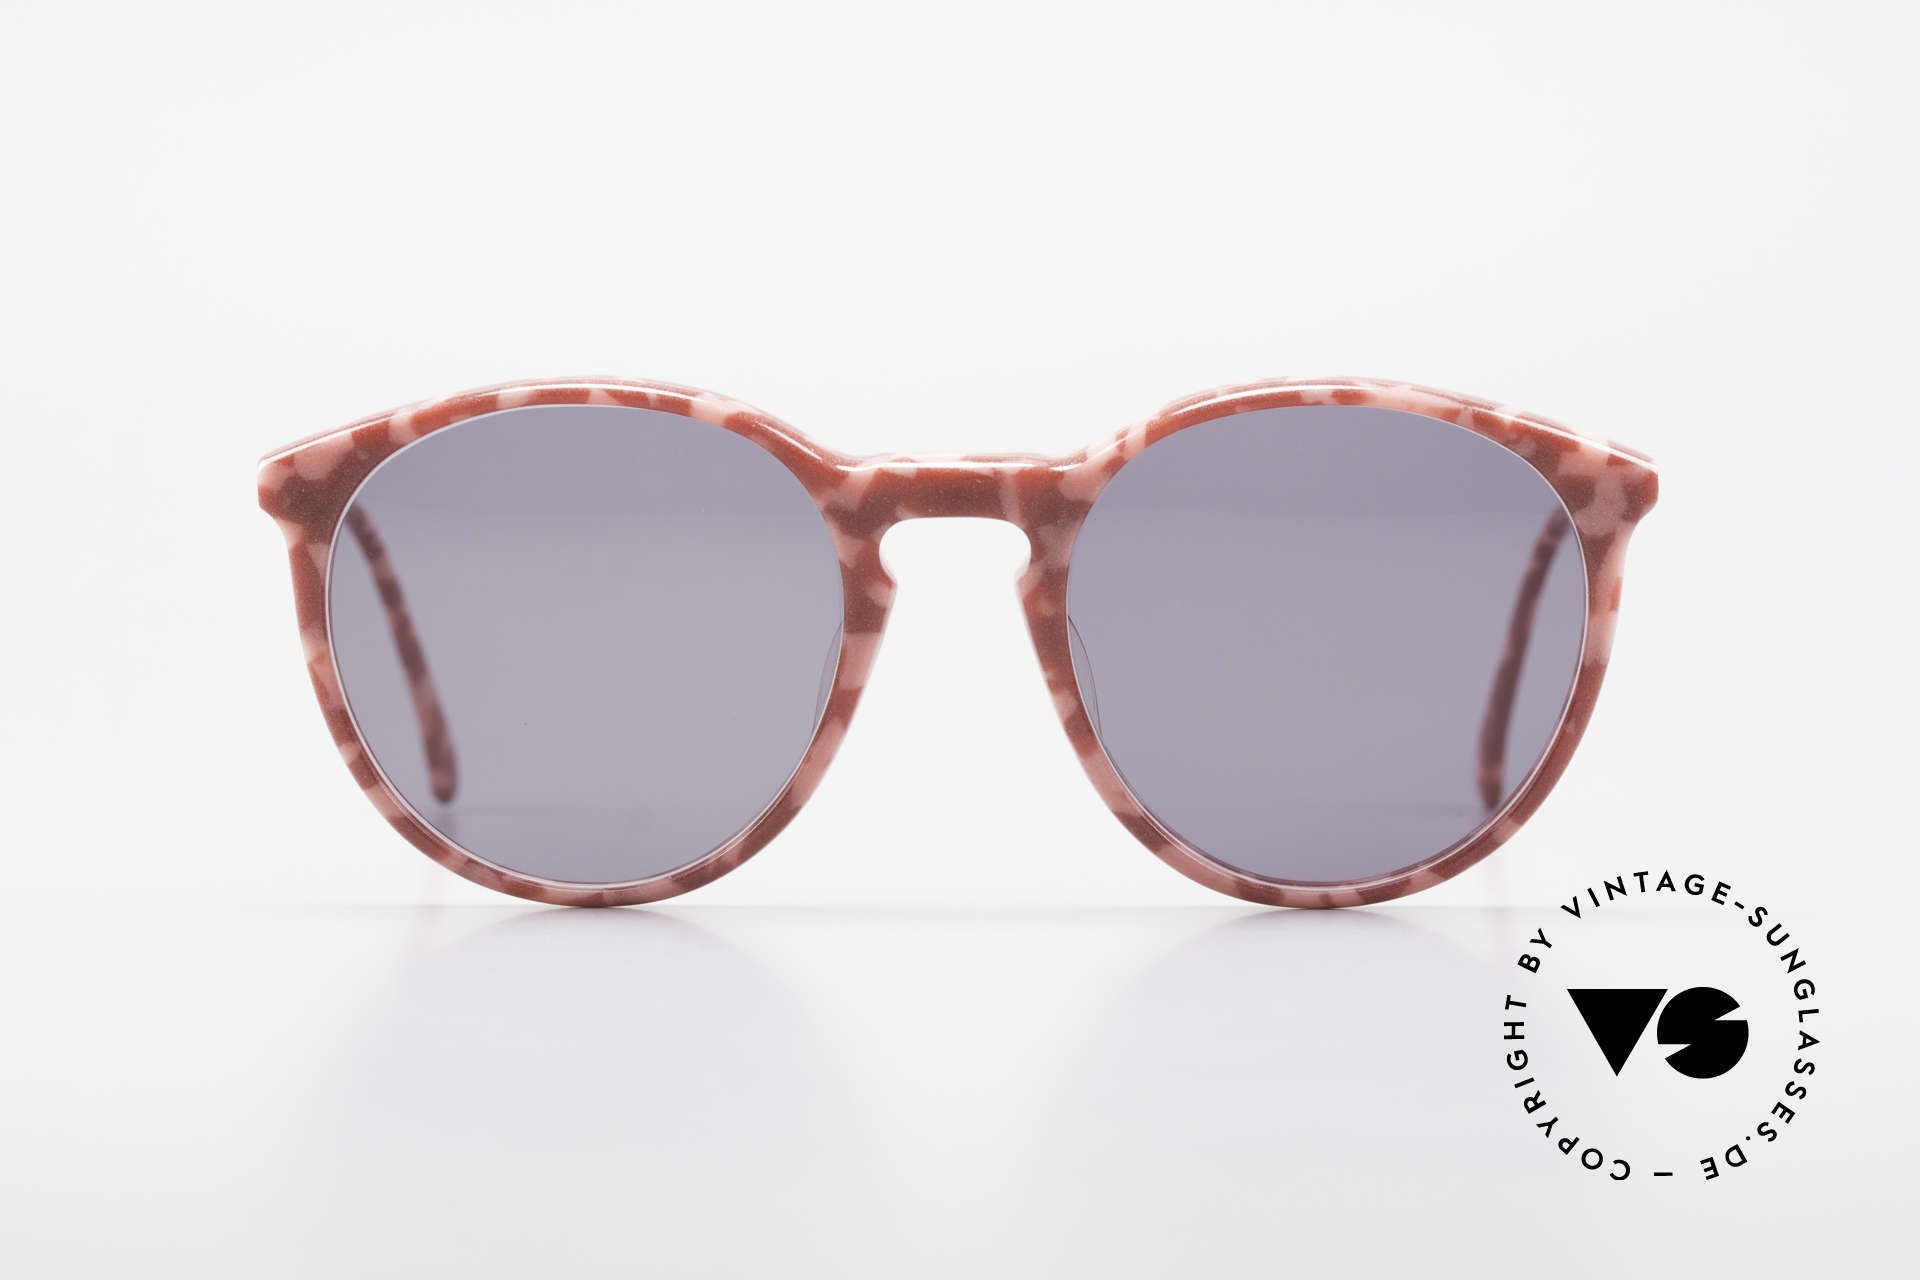 Alain Mikli 901 / 172 Panto Shades Red Pink Marbled, classic 'panto'-design with solid gray sun lenses, Made for Women